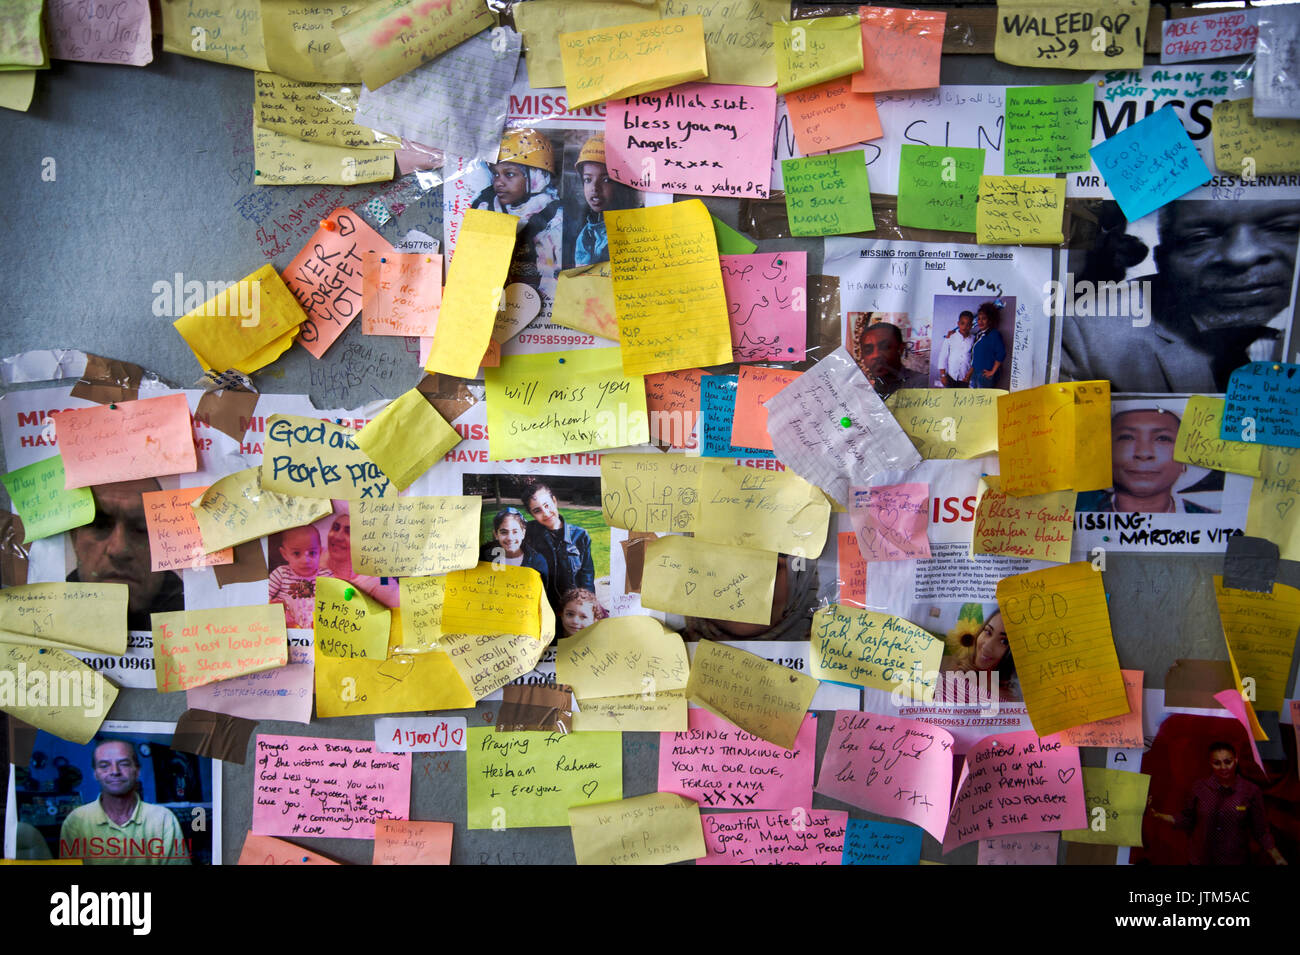 Grenfell Tower, West London. Aftermath of the tragedy. Memorial to victims of the fire with messages and post-it notes - Stock Image